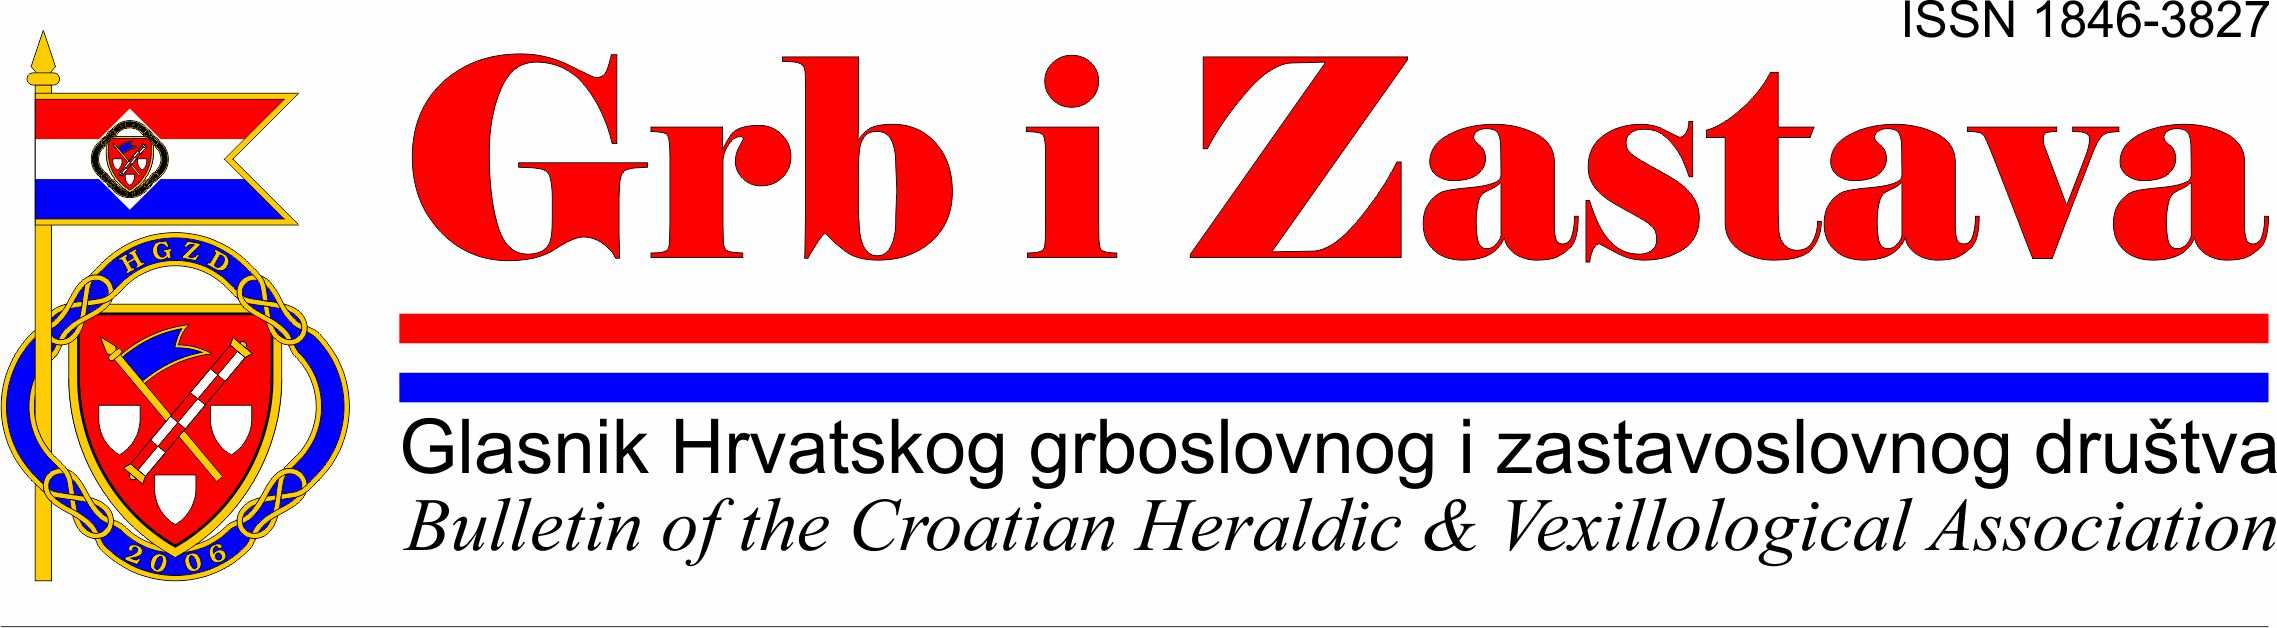 Grb i zastava - Glasnik Hrvatskog grboslovnog i zastavoslovnog društva | Bullletin of the Croatian Heraldic and Vexillological AssociationGrb i zastava